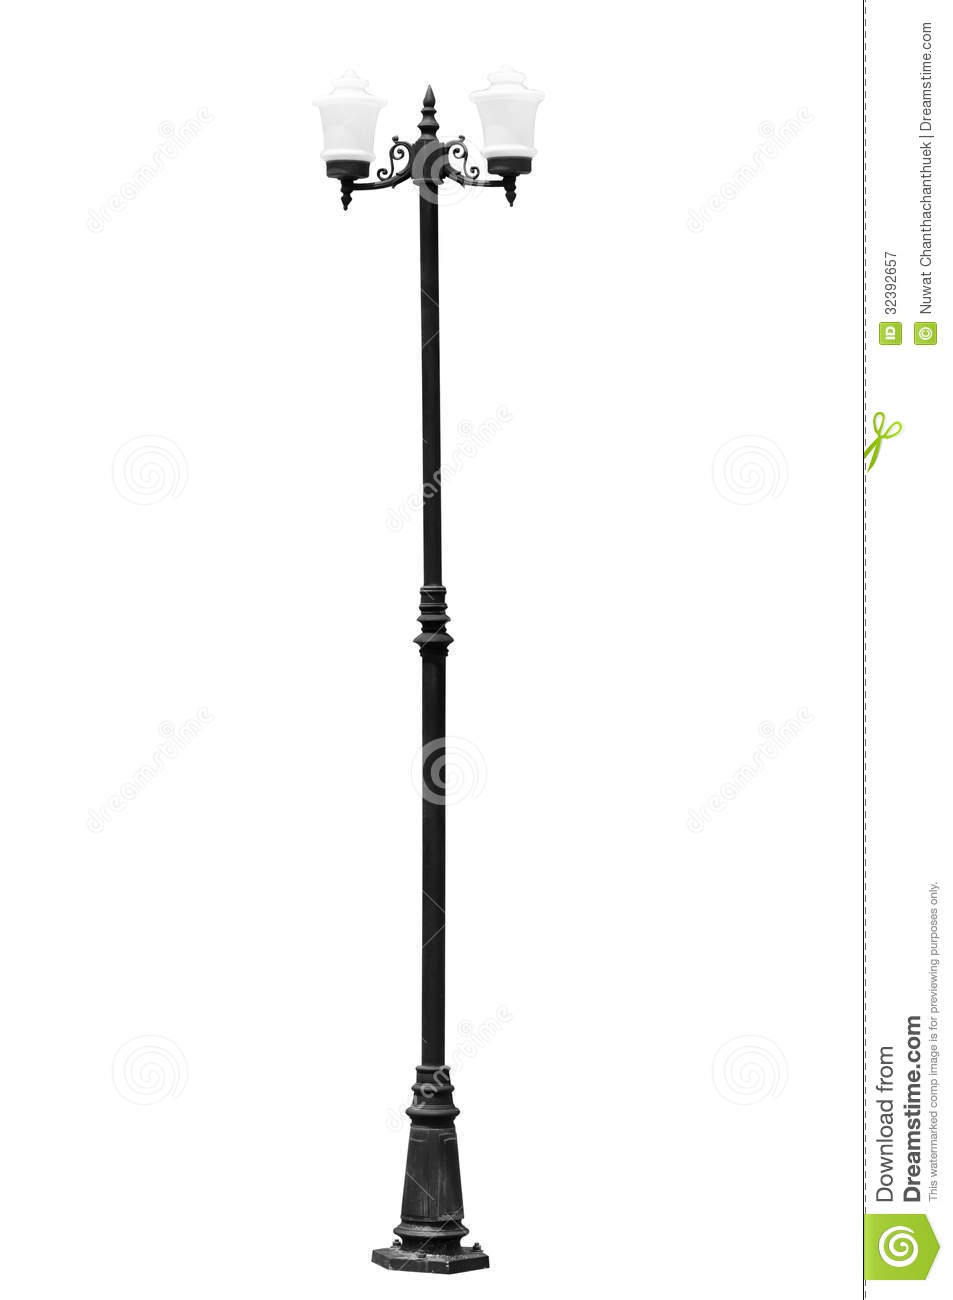 Street Light Pole Stock Image Image Of High Halogen